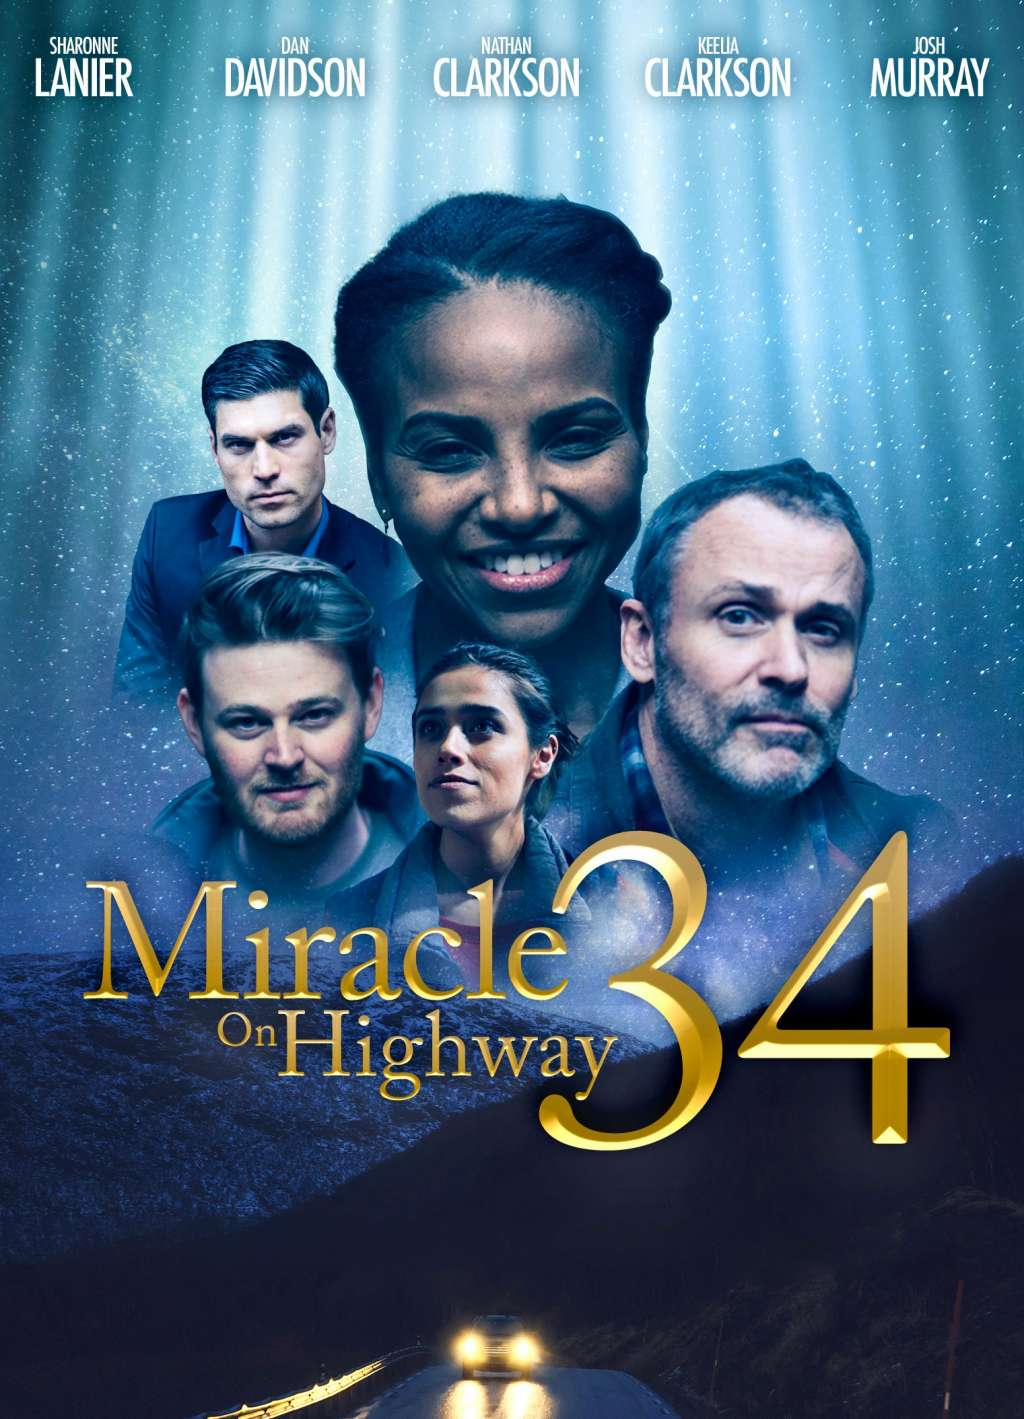 Miracle on Highway 34 kapak